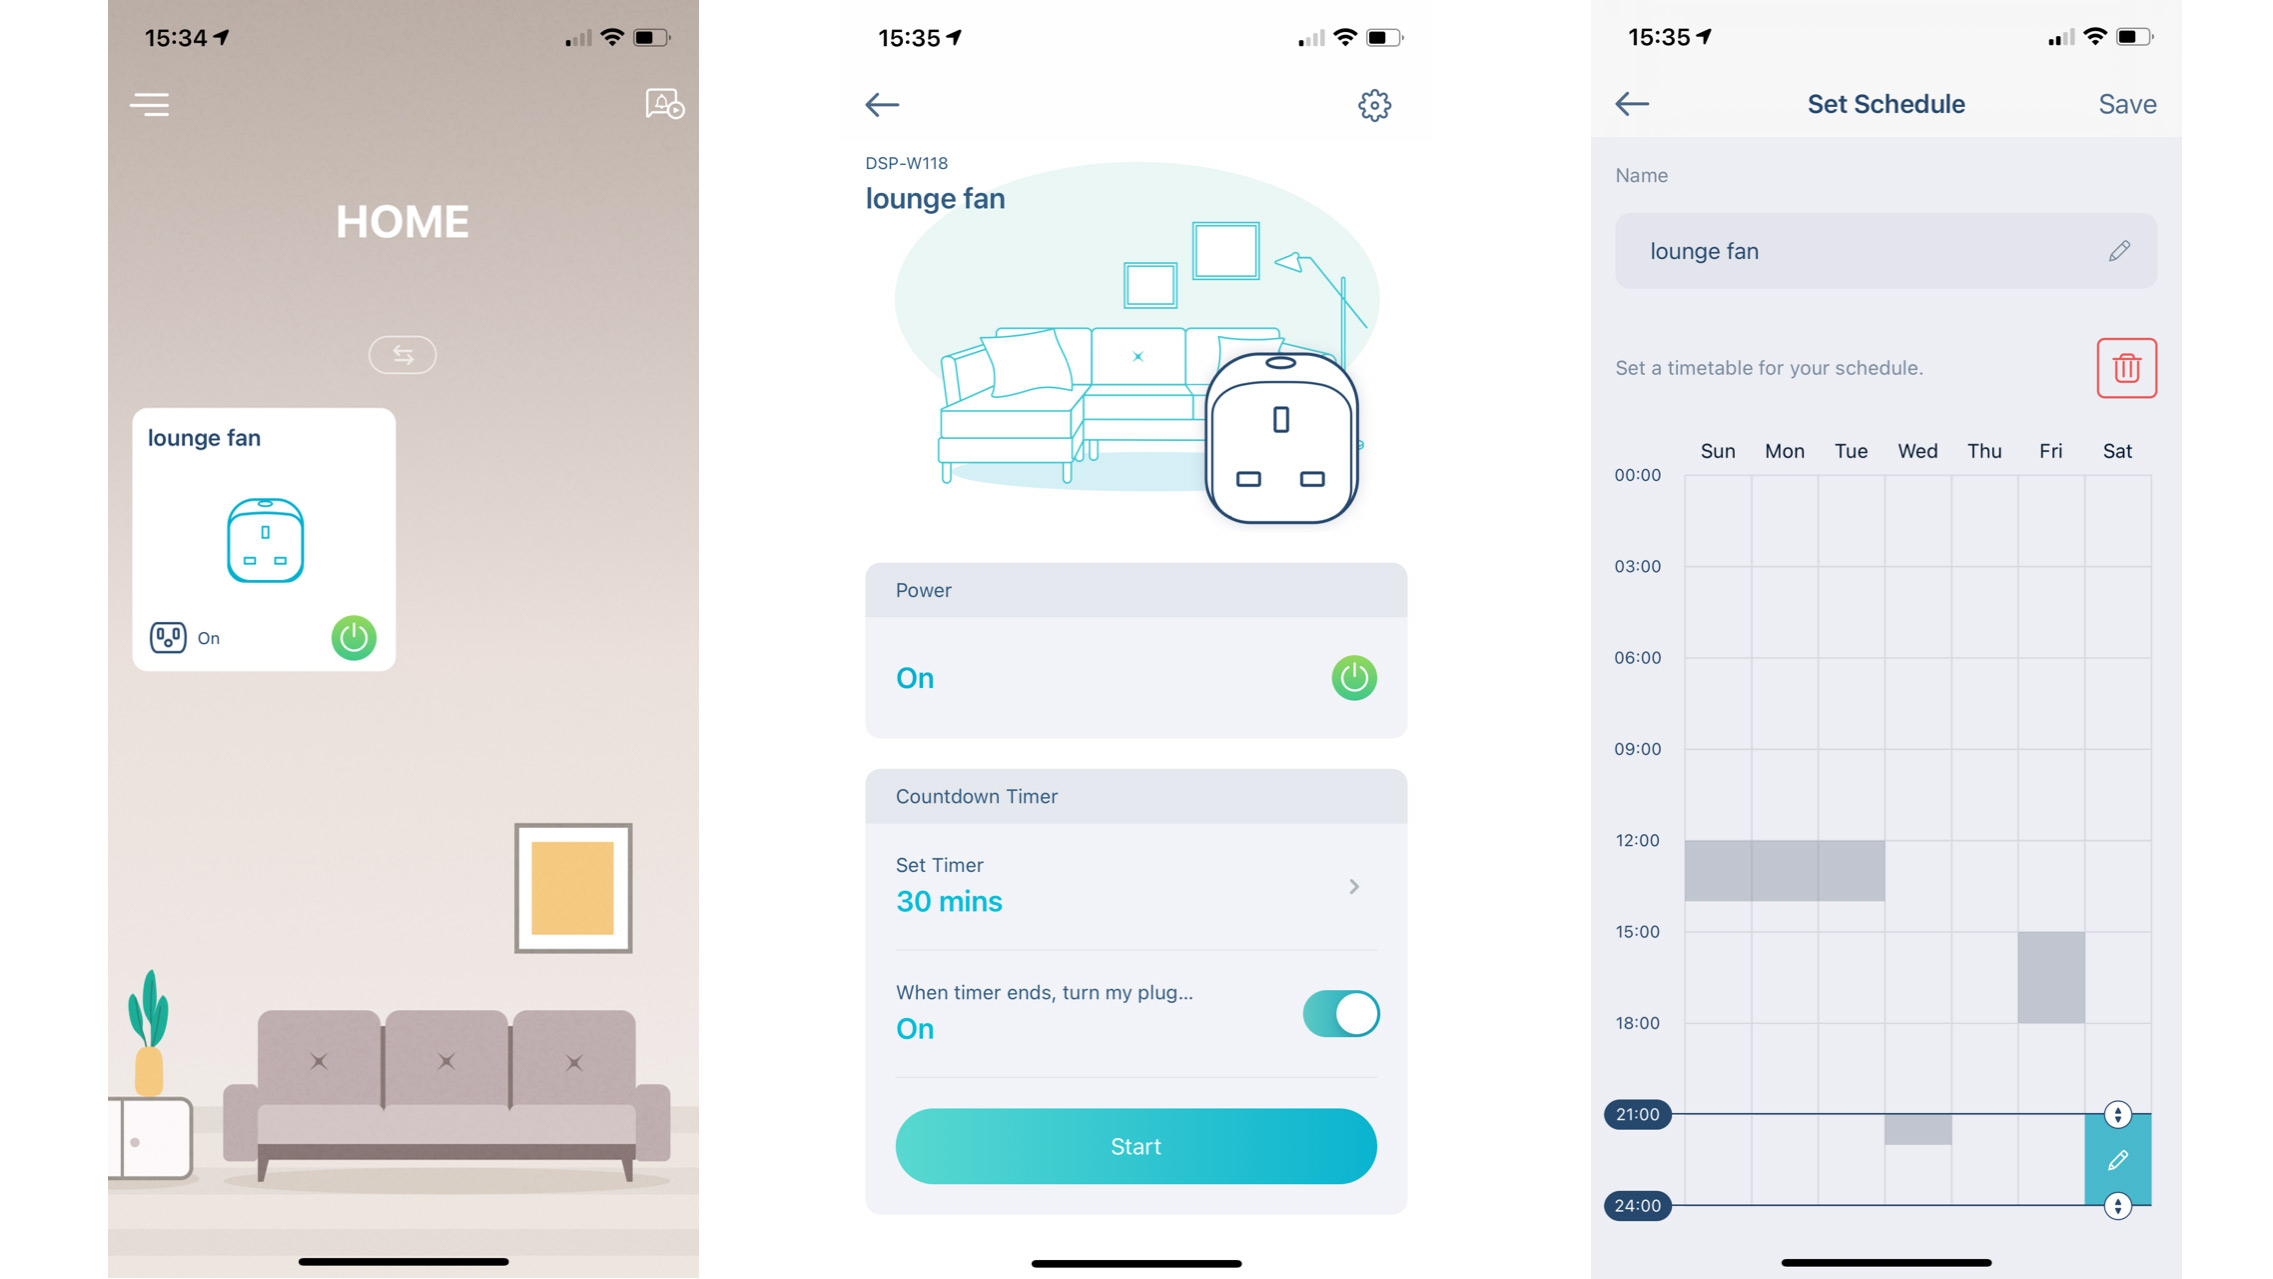 The app to control the D-Link Mini Wi-Fi Smart Plug DSP-W118